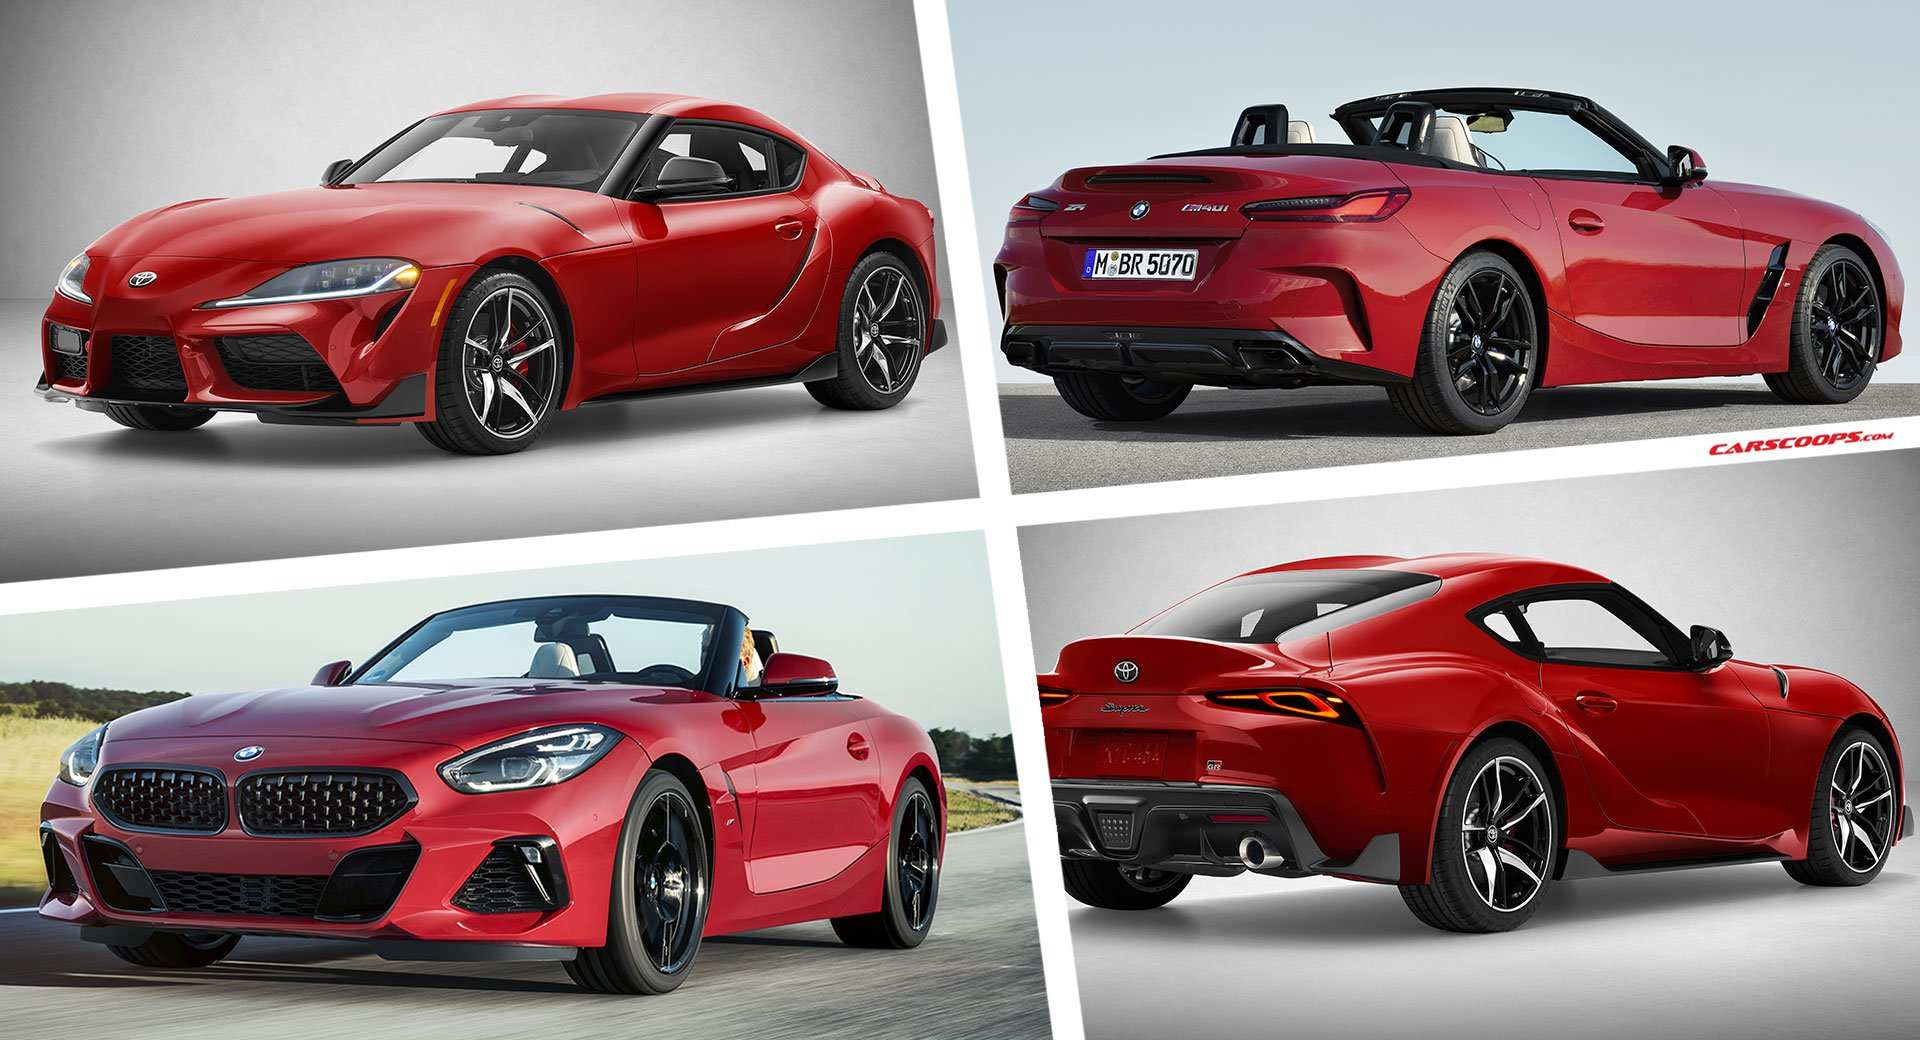 22 Gallery of 2020 Toyota Supra Vs Bmw Z4 Ratings for 2020 Toyota Supra Vs Bmw Z4